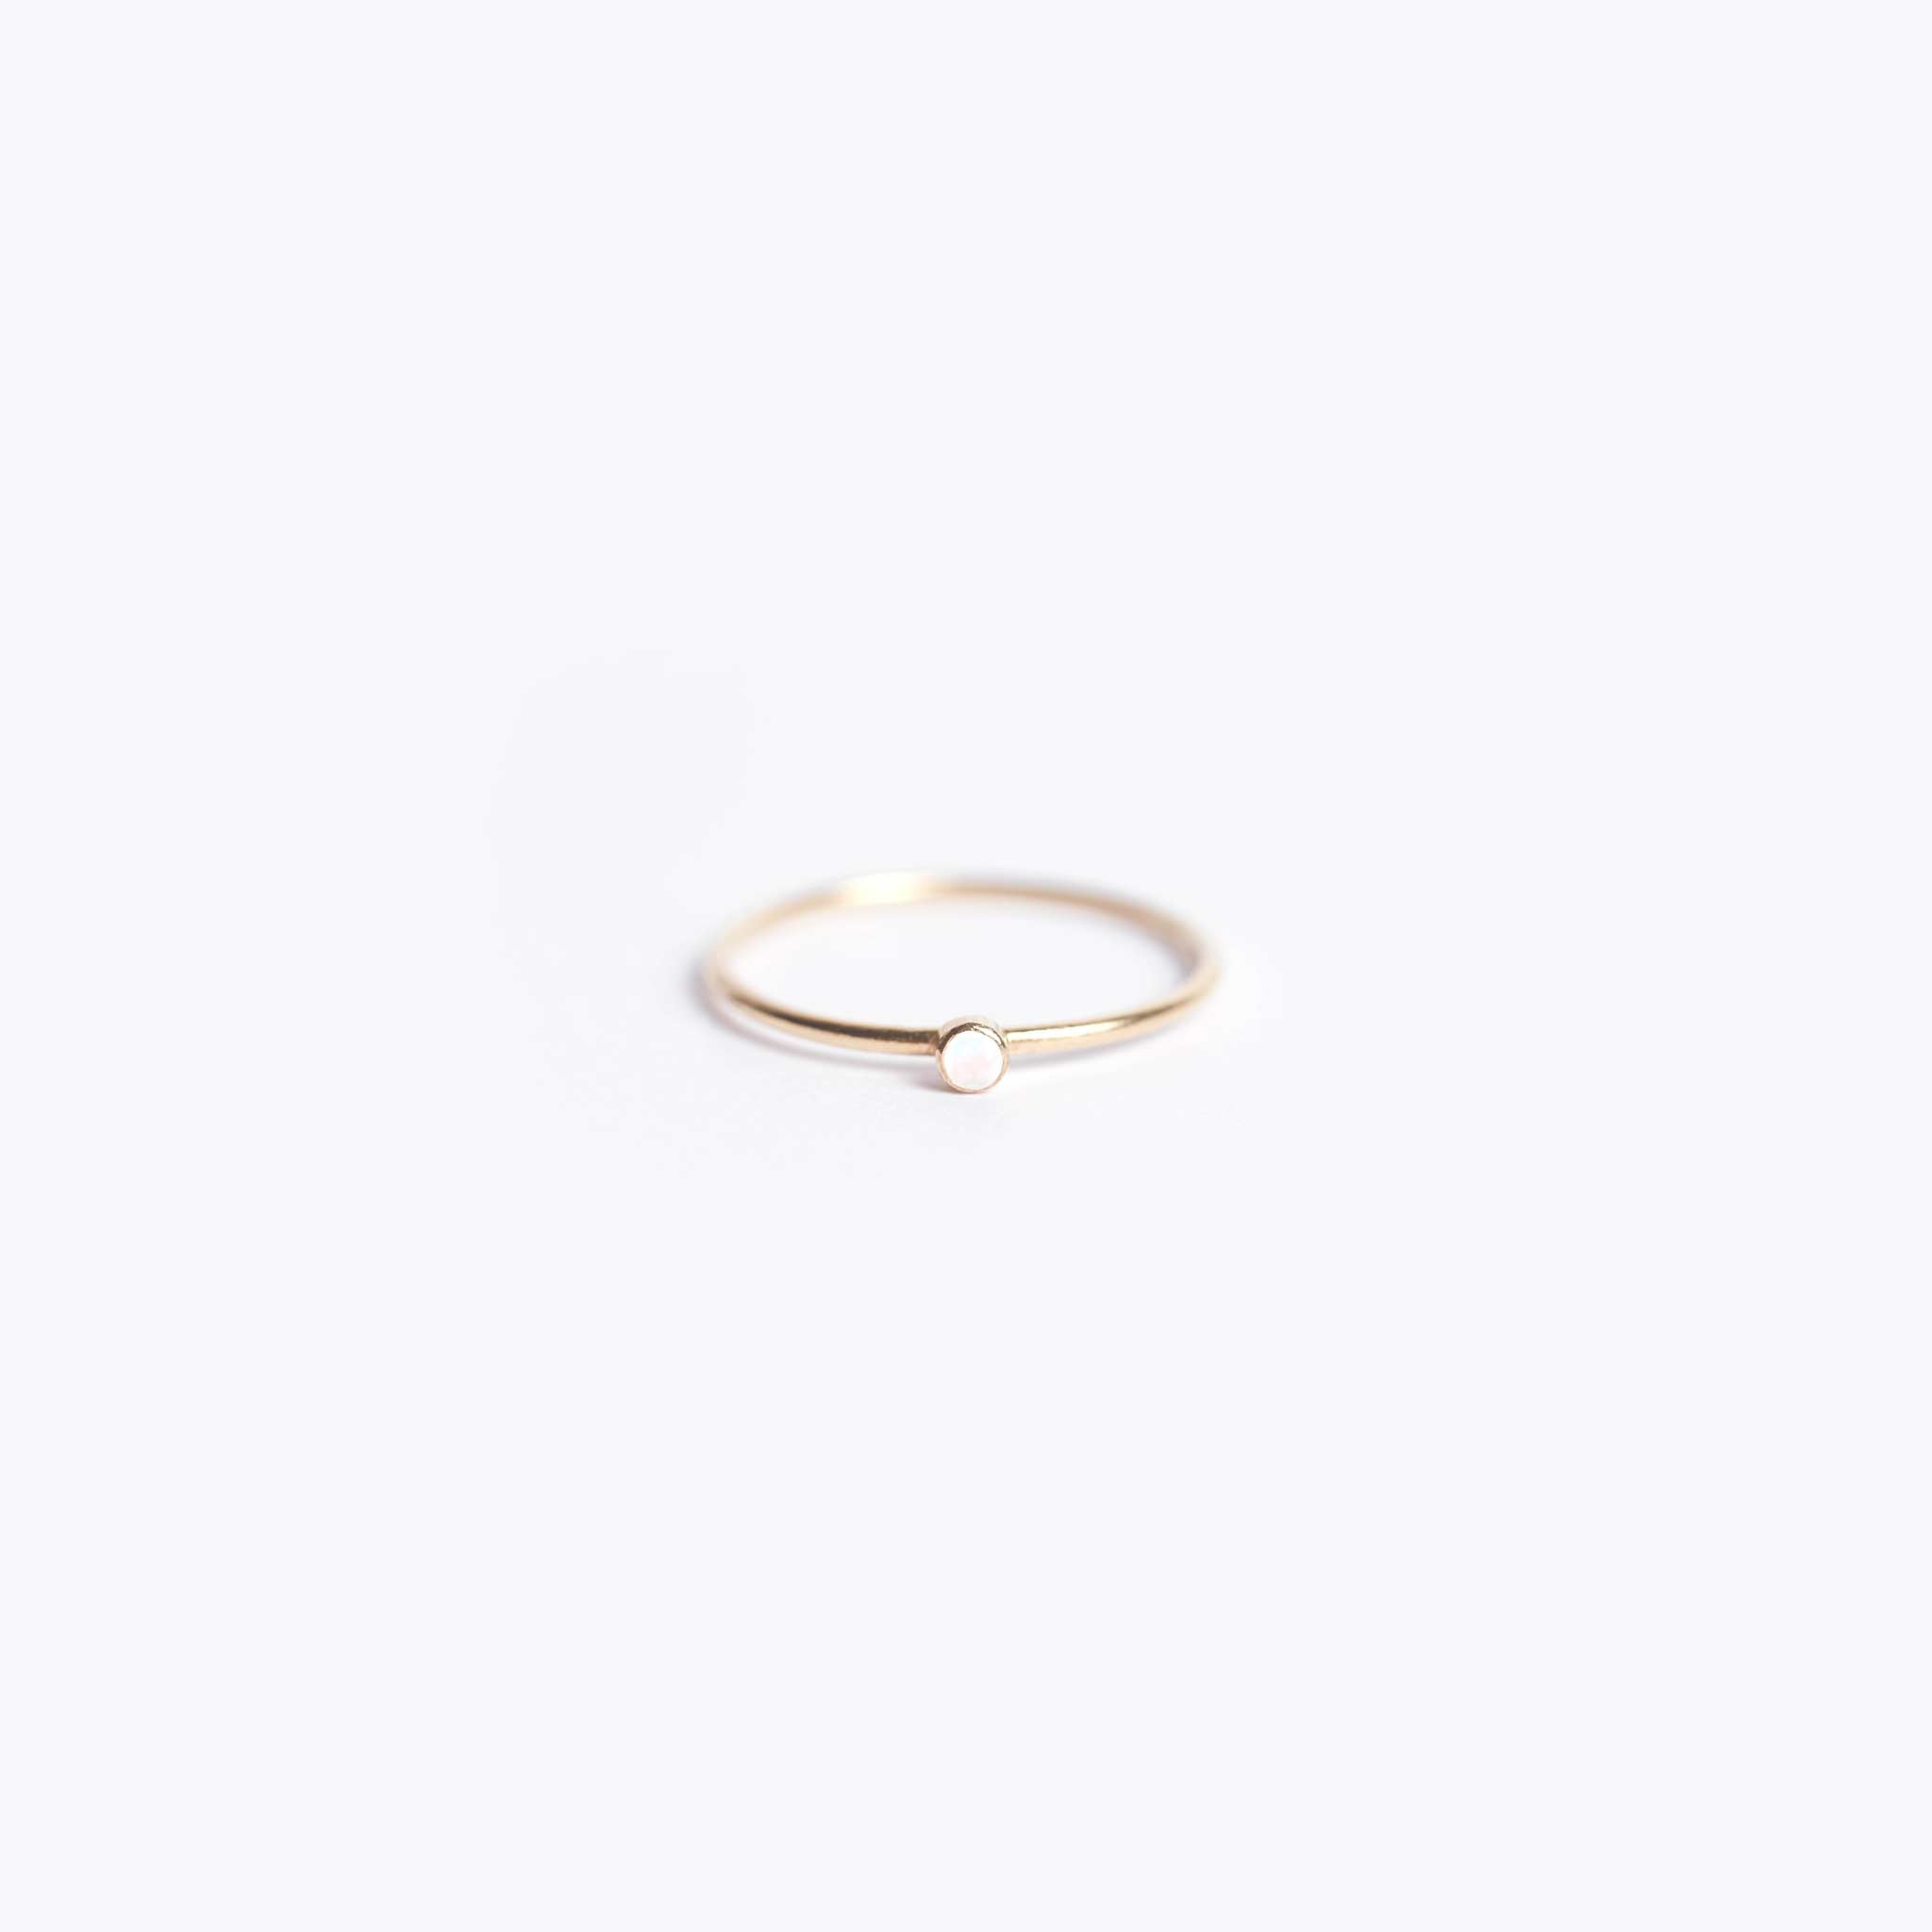 Wanderlust Life Ethically Handmade jewellery made in the UK. Minimalist gold and fine cord jewellery. october birthstone, fine gold opal ring